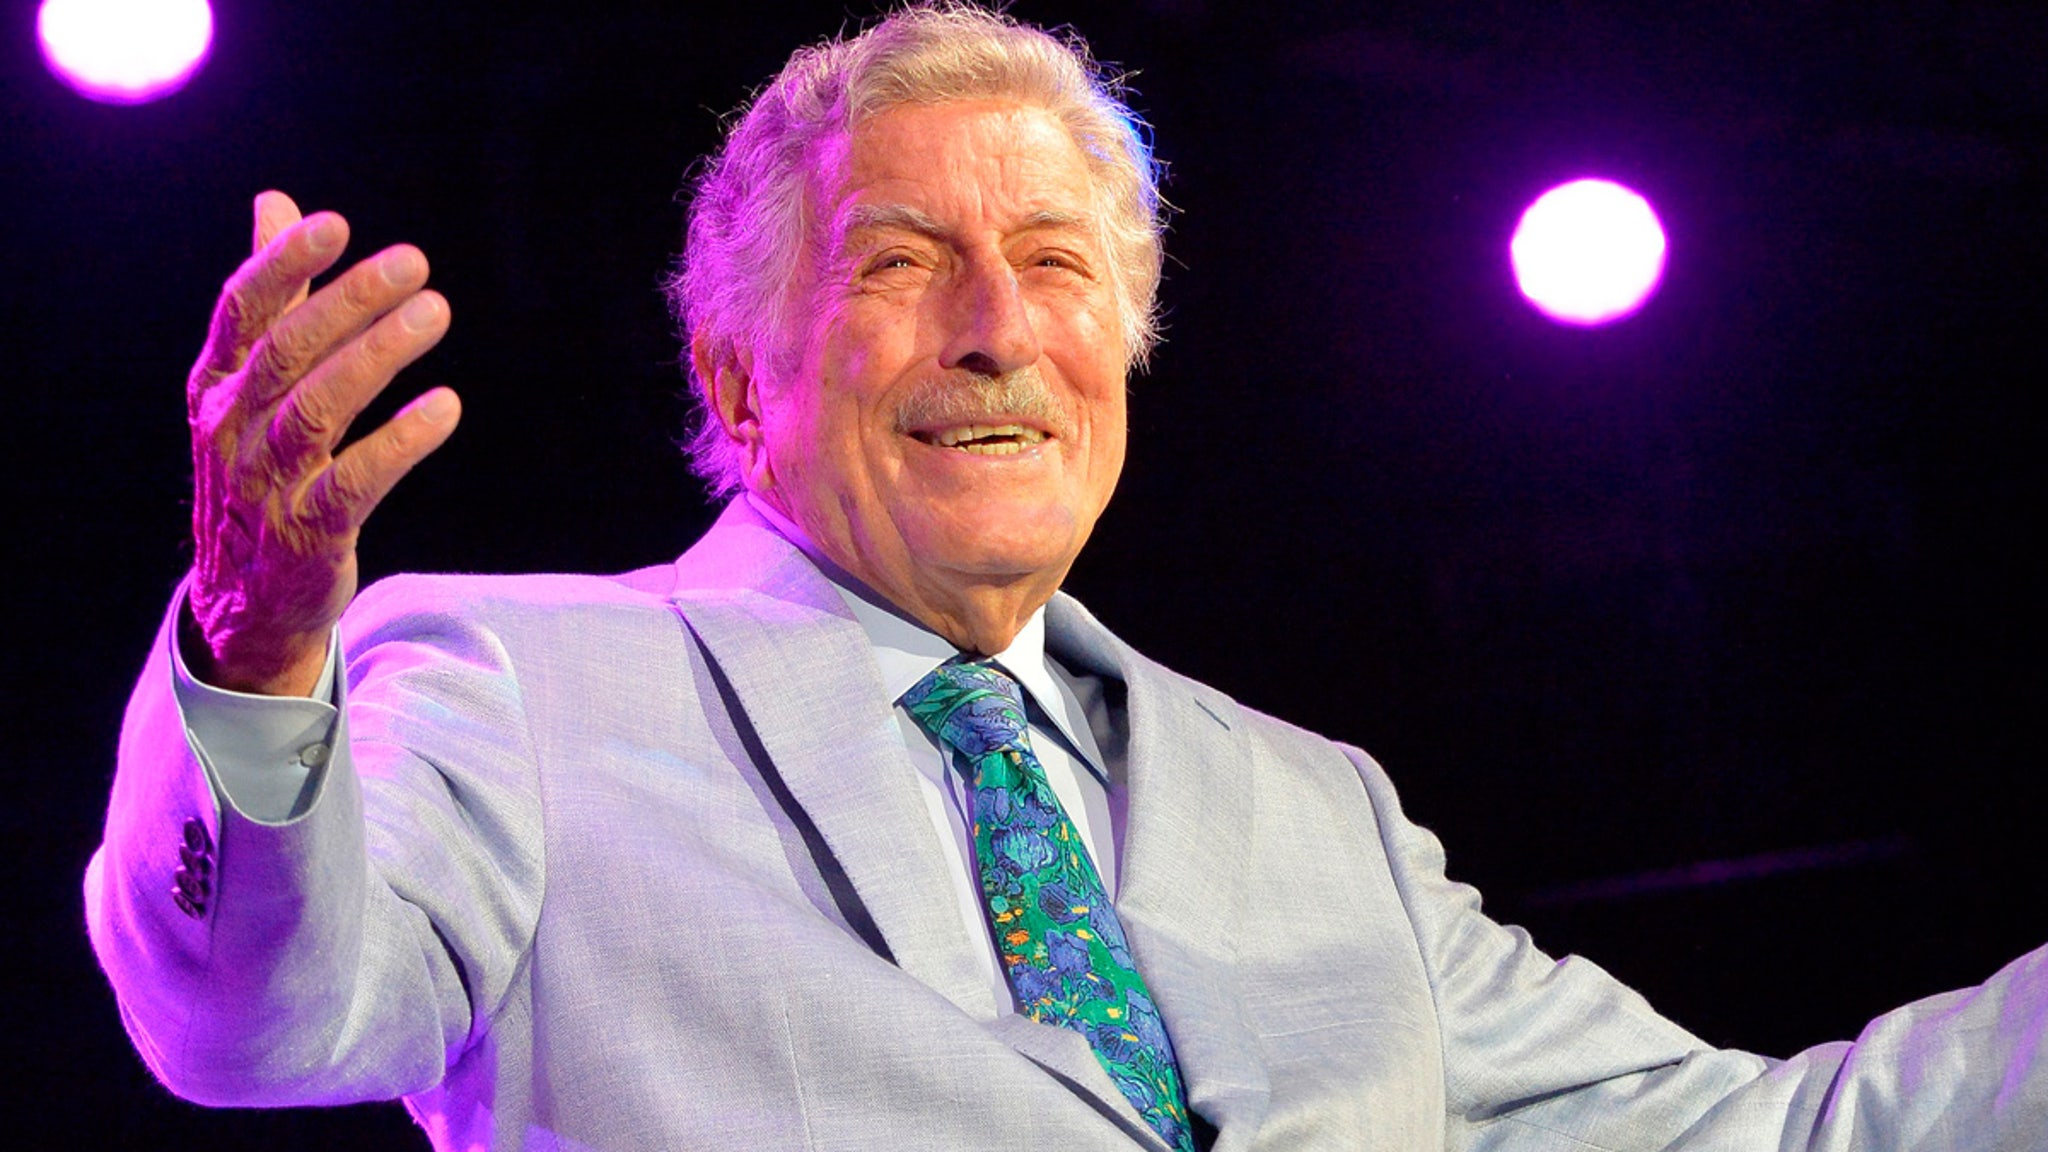 Tony Bennett Retires From Live Music Due To Health Issues thumbnail